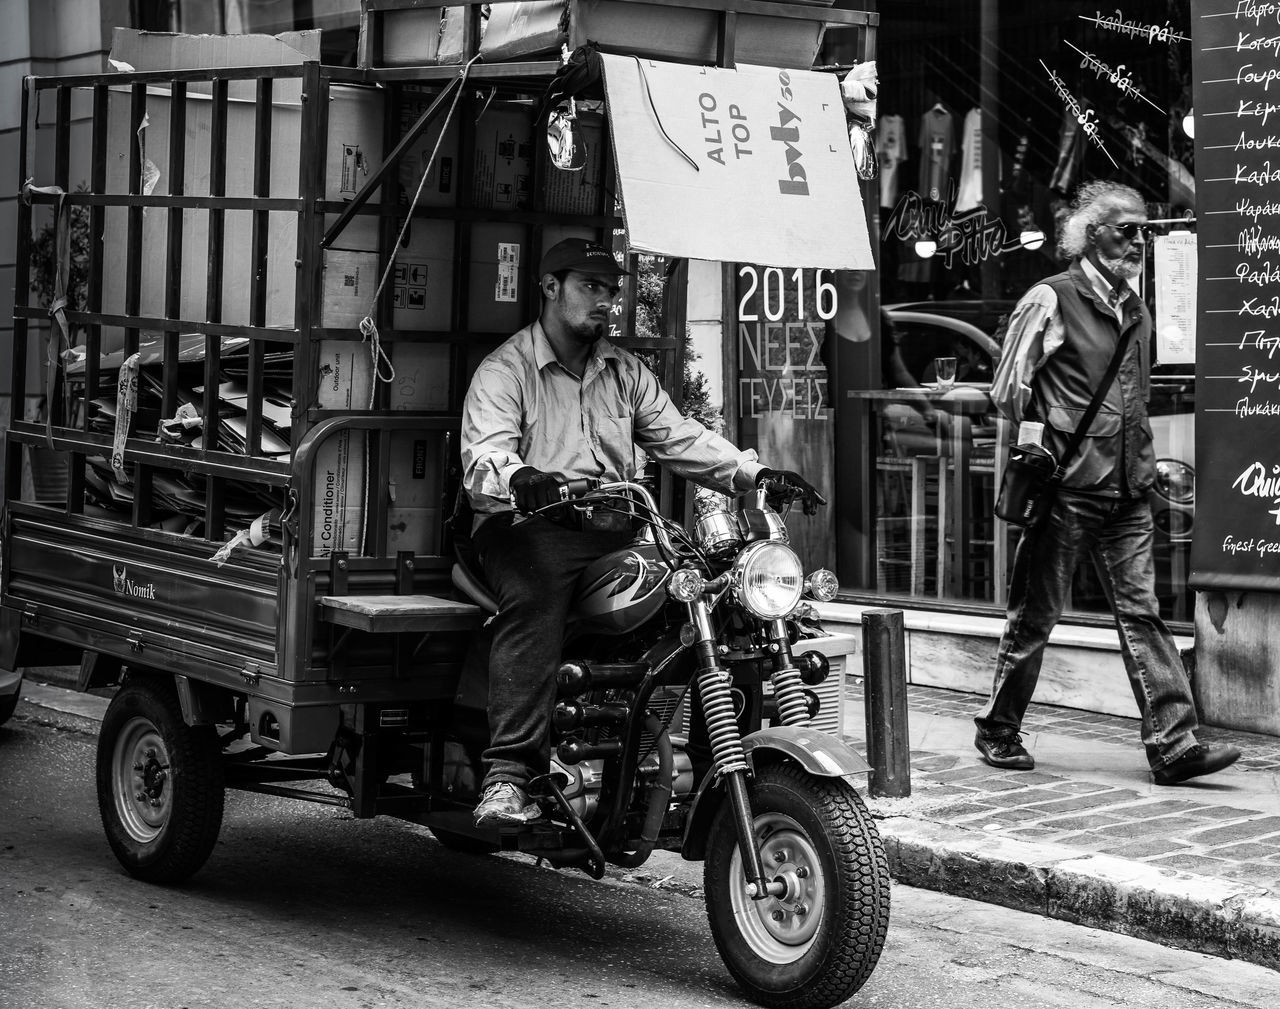 transportation, real people, land vehicle, men, mode of transport, motorcycle, full length, street, lifestyles, riding, outdoors, day, built structure, architecture, road, building exterior, one person, sitting, city, biker, adult, adults only, people